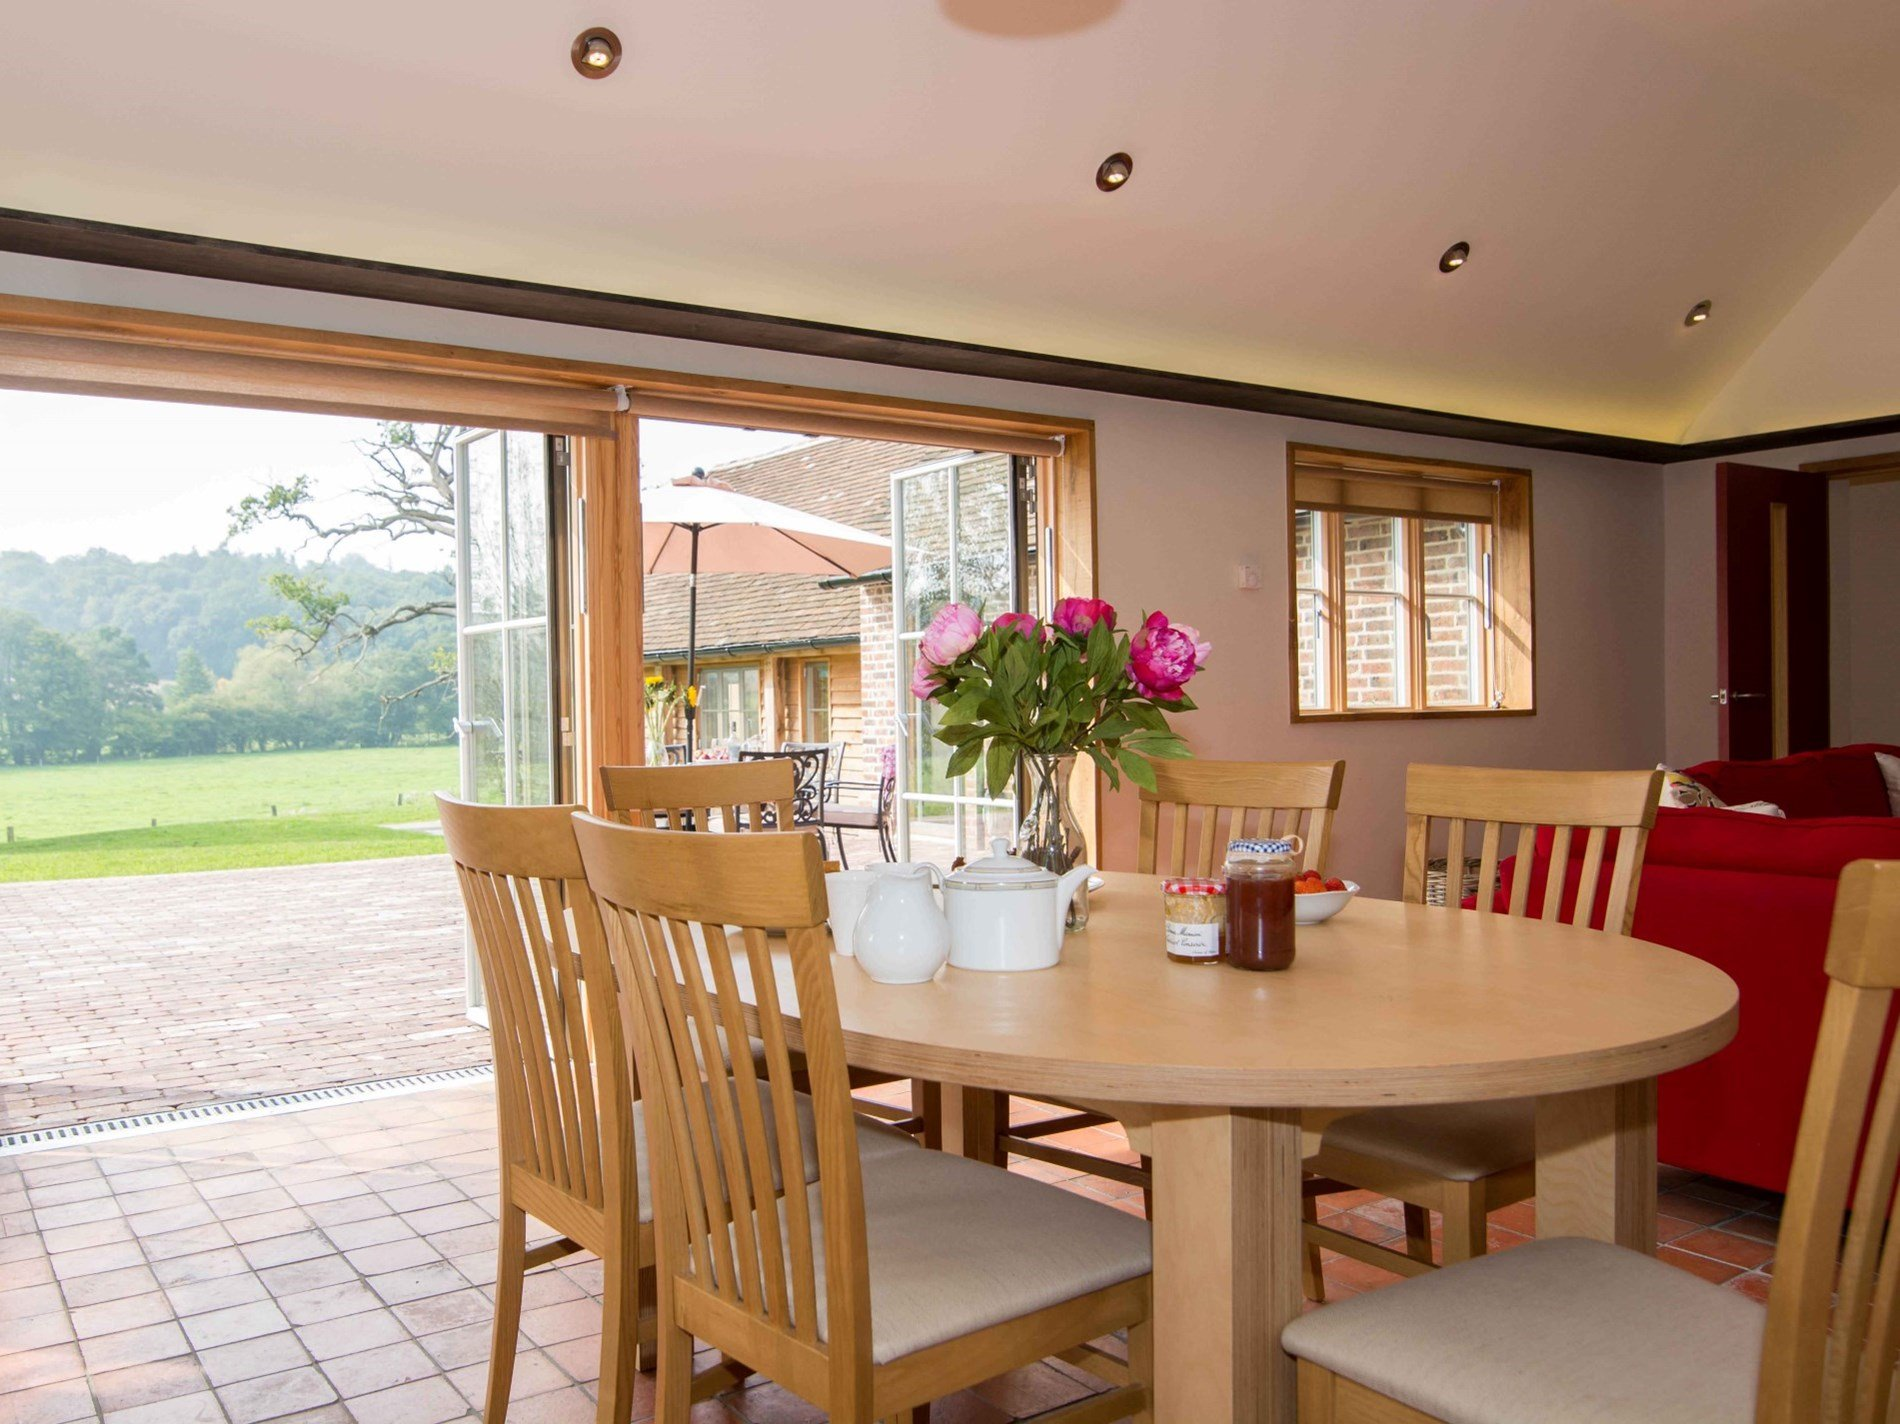 Savour the countryside surrounding the property